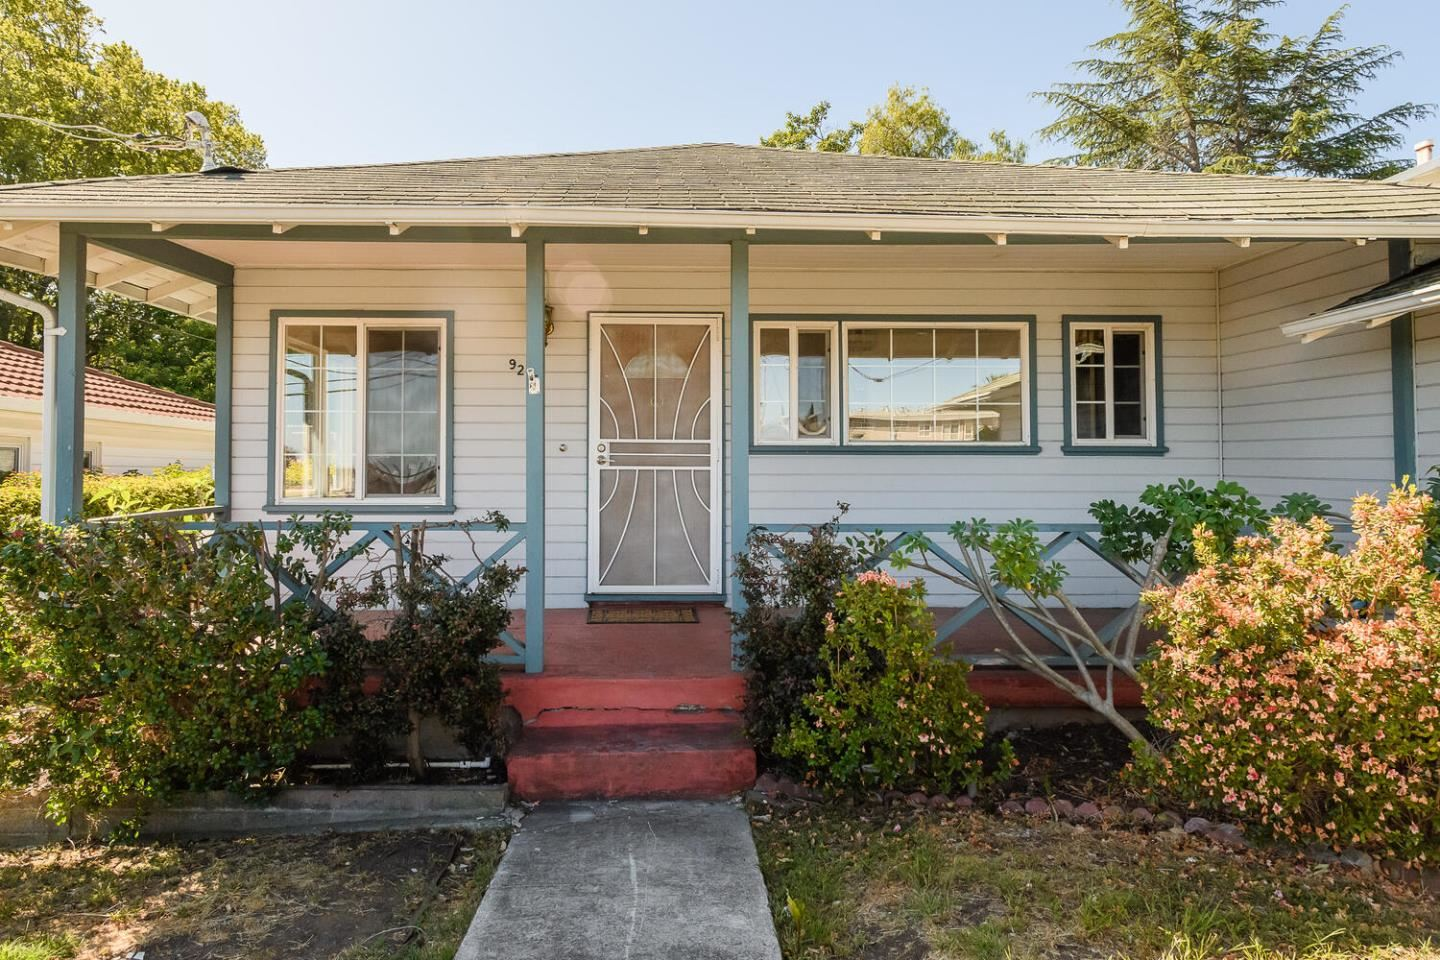 Photo for 921 North Road, BELMONT, CA 94002 (MLS # ML81845615)